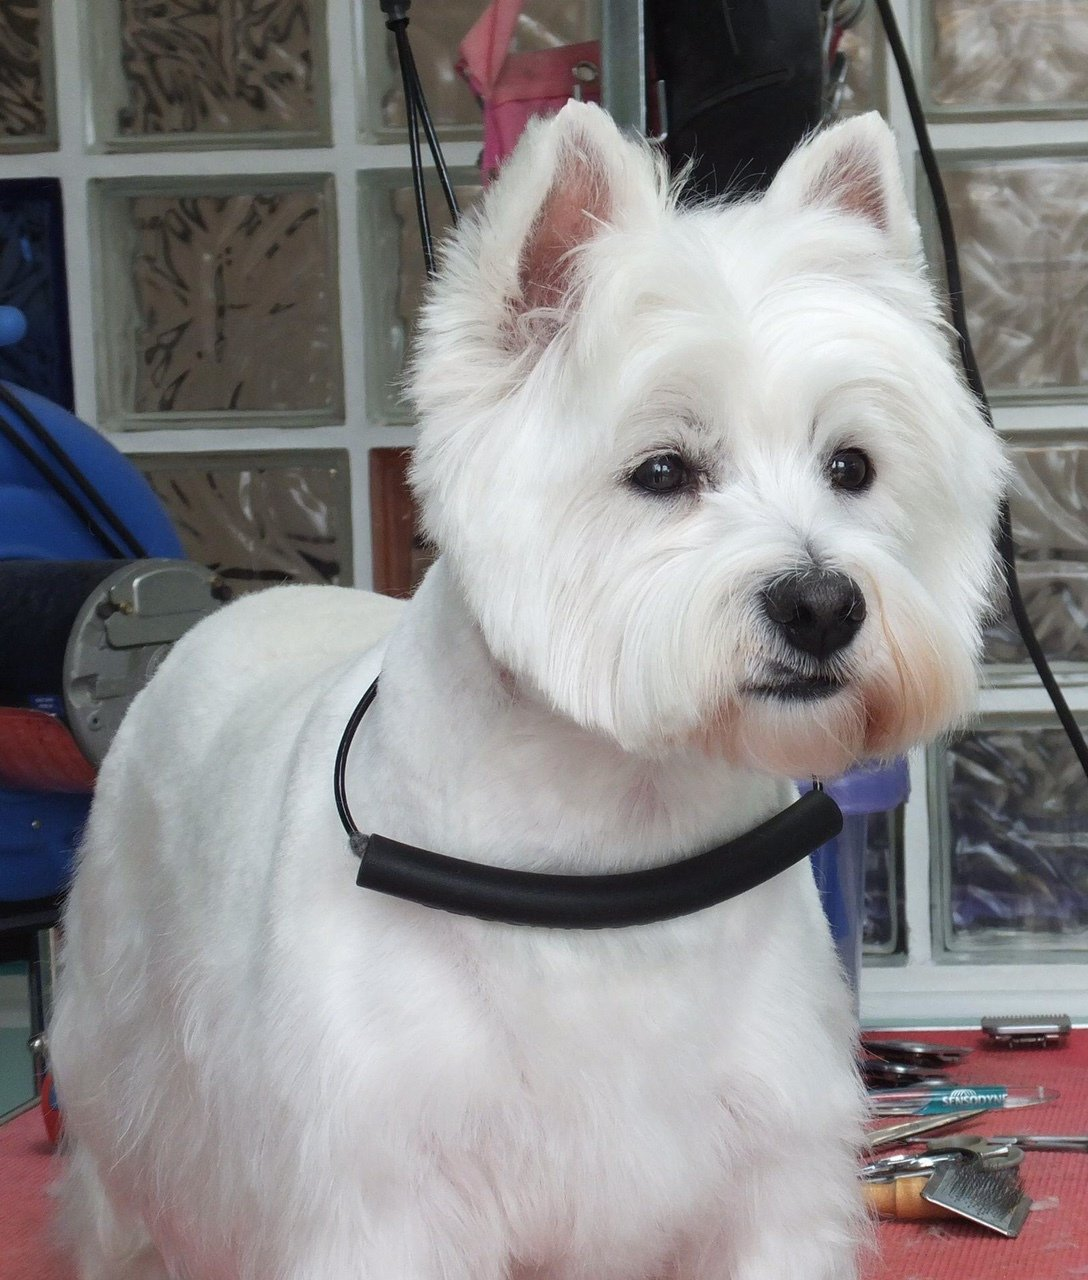 White terrier dog